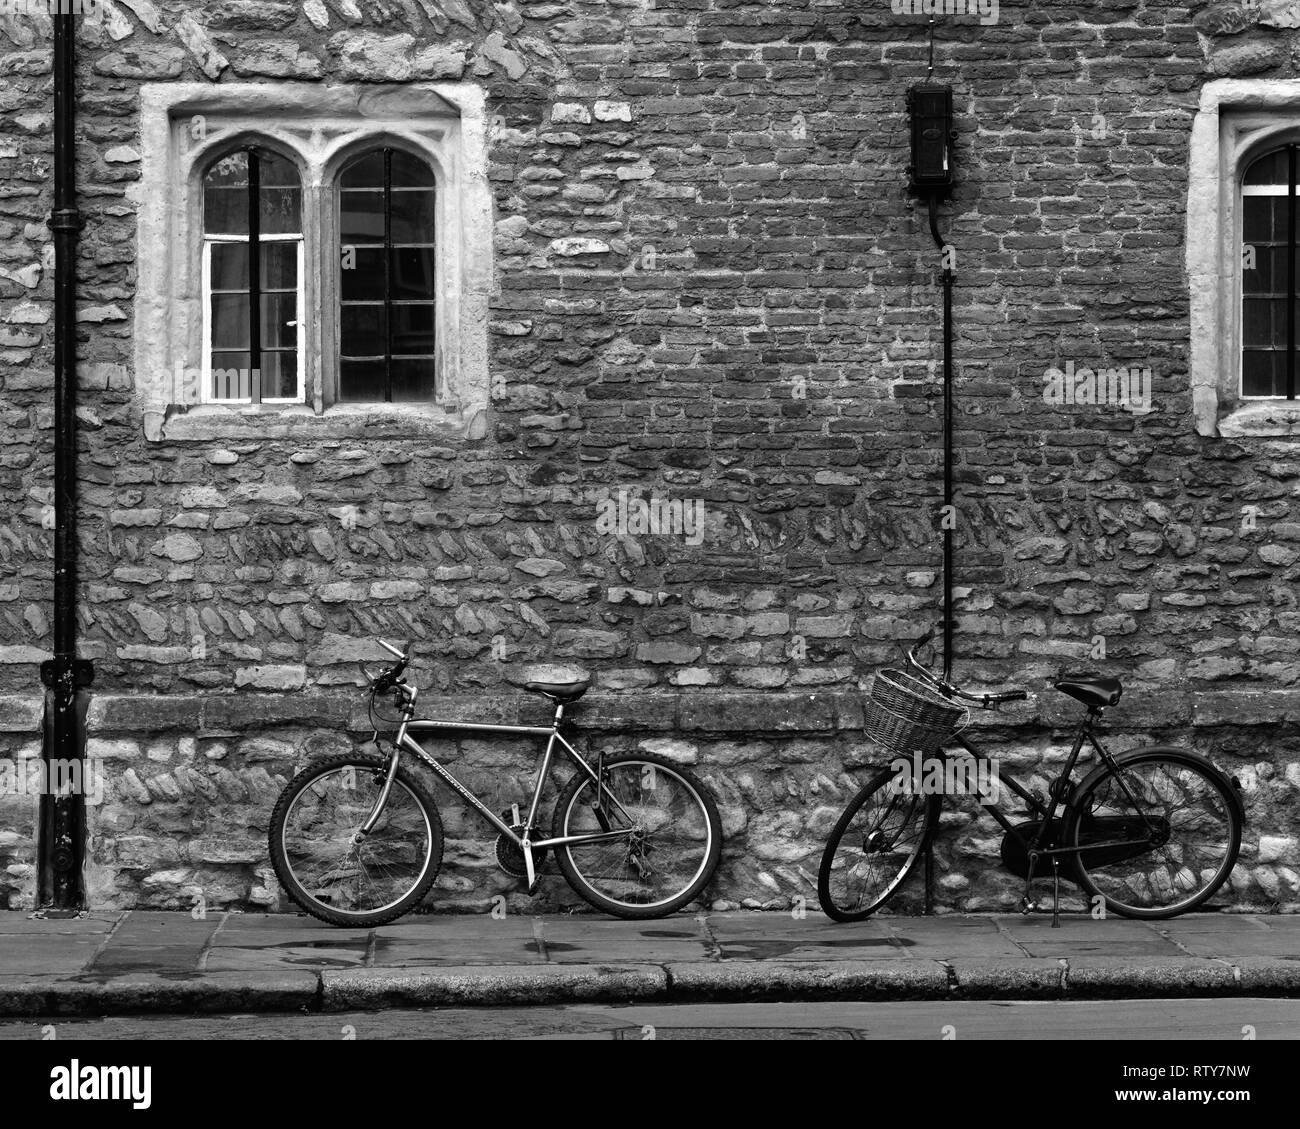 Two bicycles against the wall of Trinity College Cambridge England - Stock Image